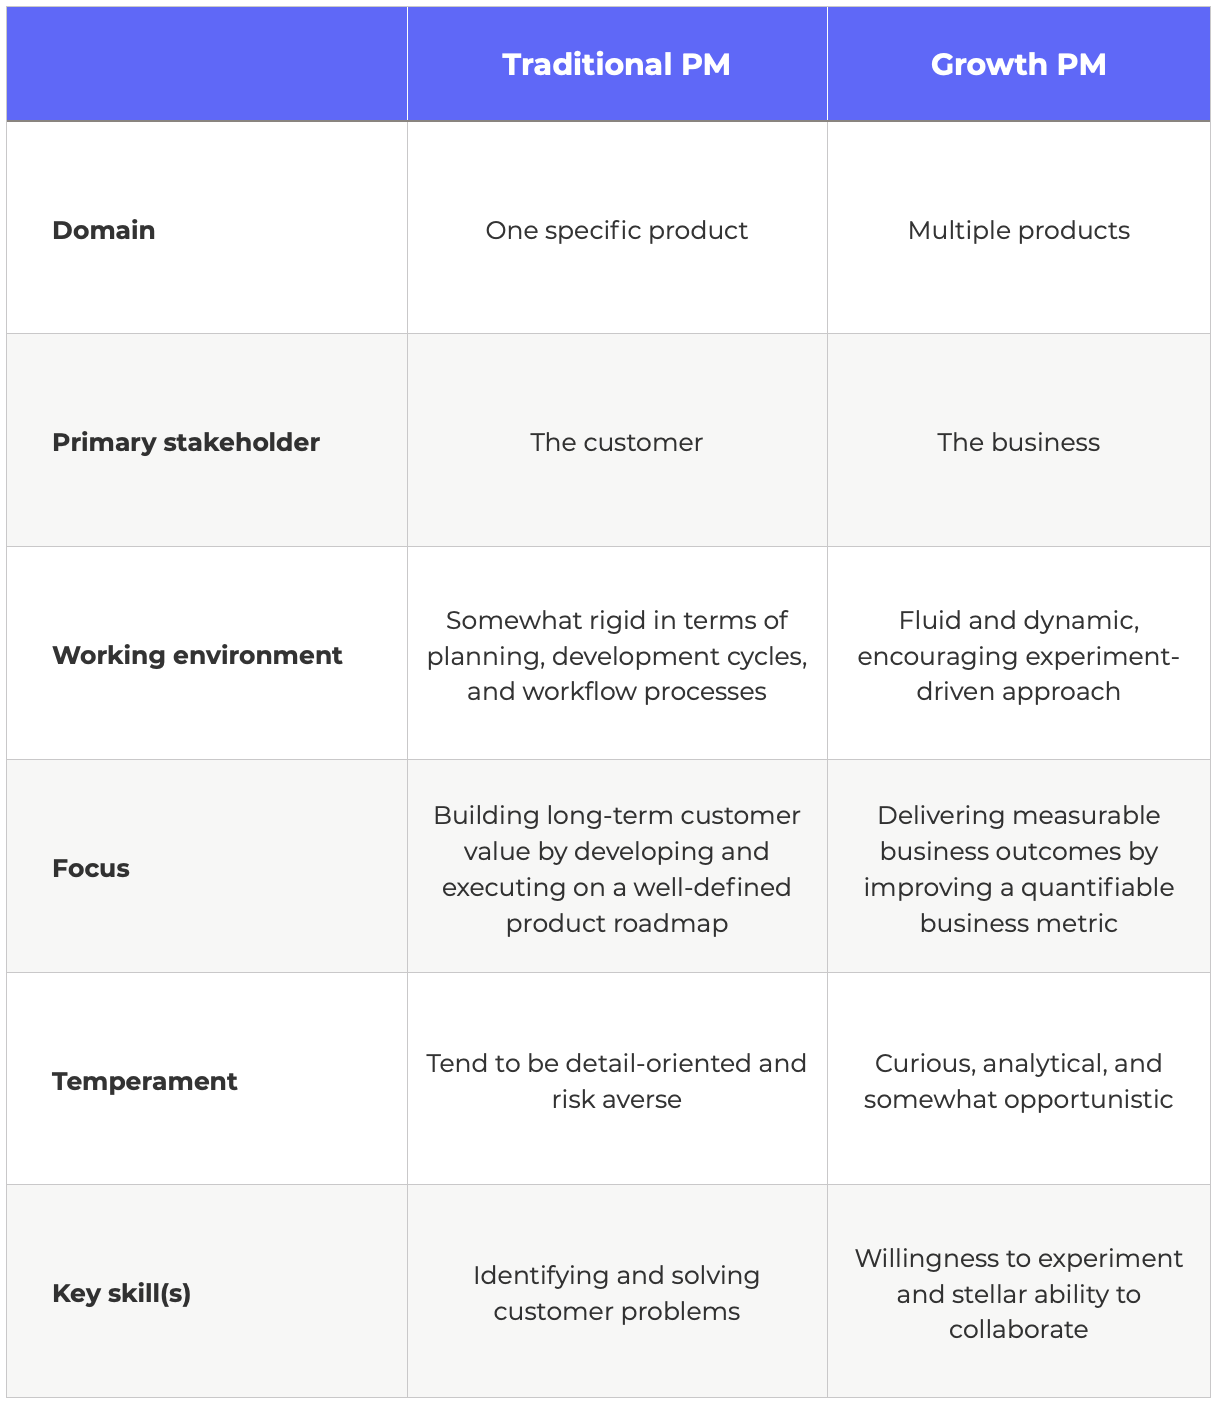 comparison of growth product manager and traditional PM